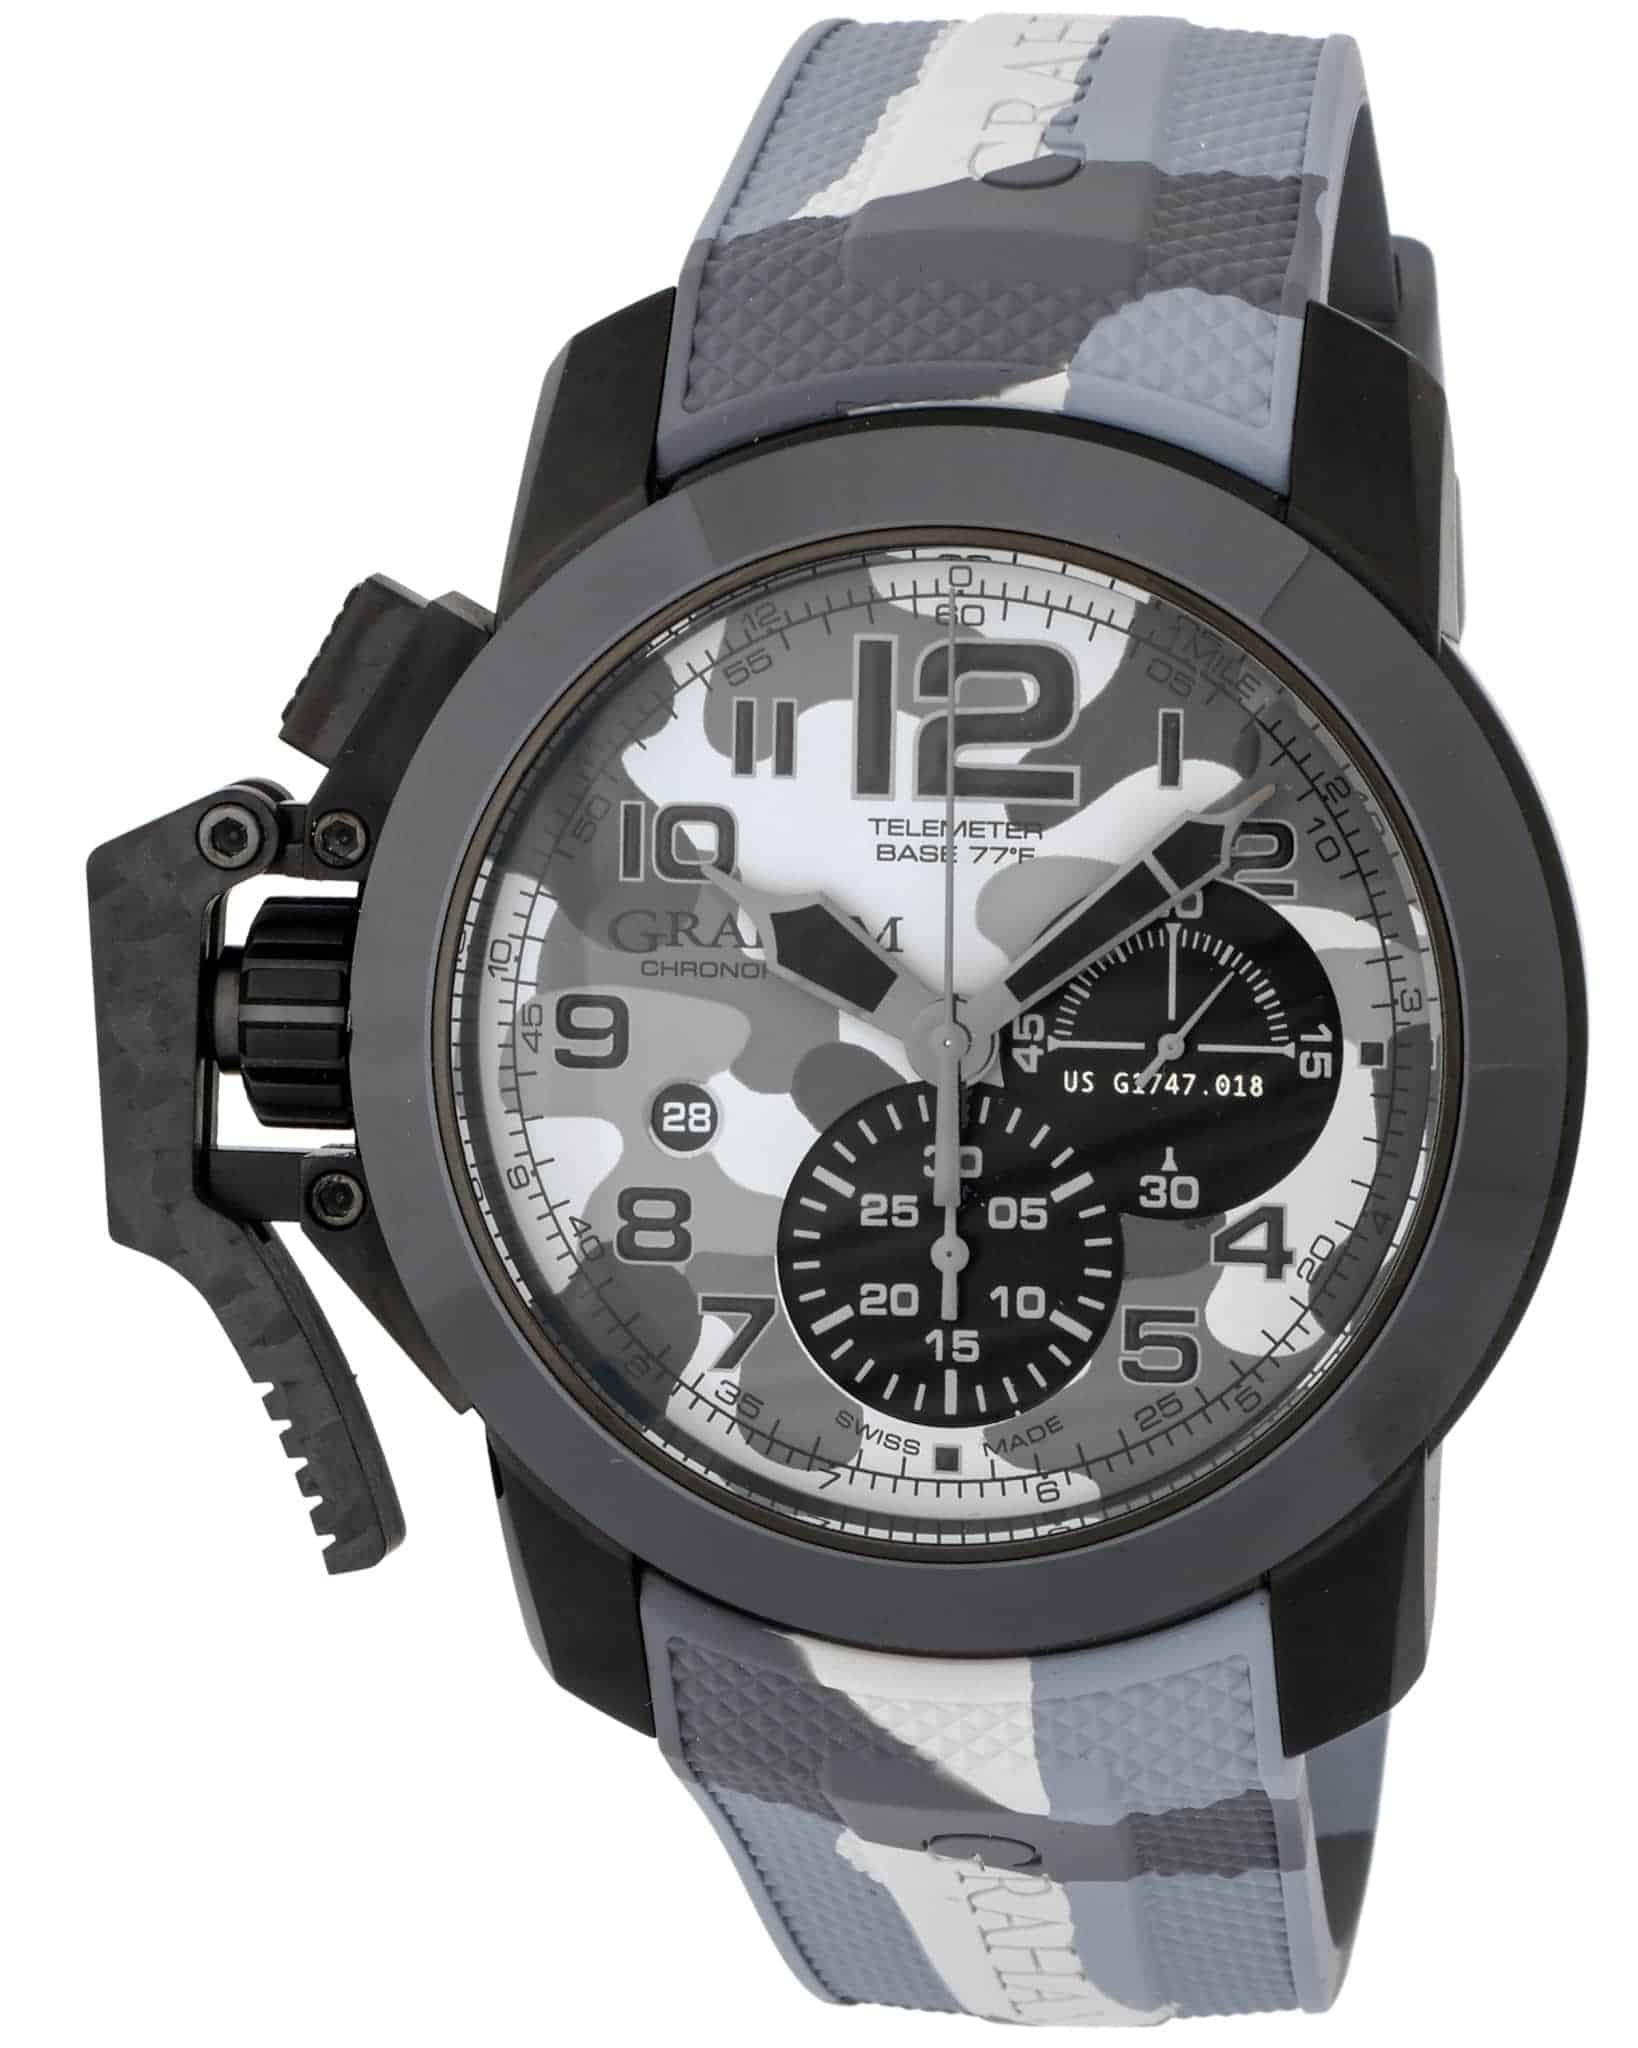 Graham Chronofighter Oversize Black Arrow LE Chronograph Men's Watch – 2CCAU.S02B